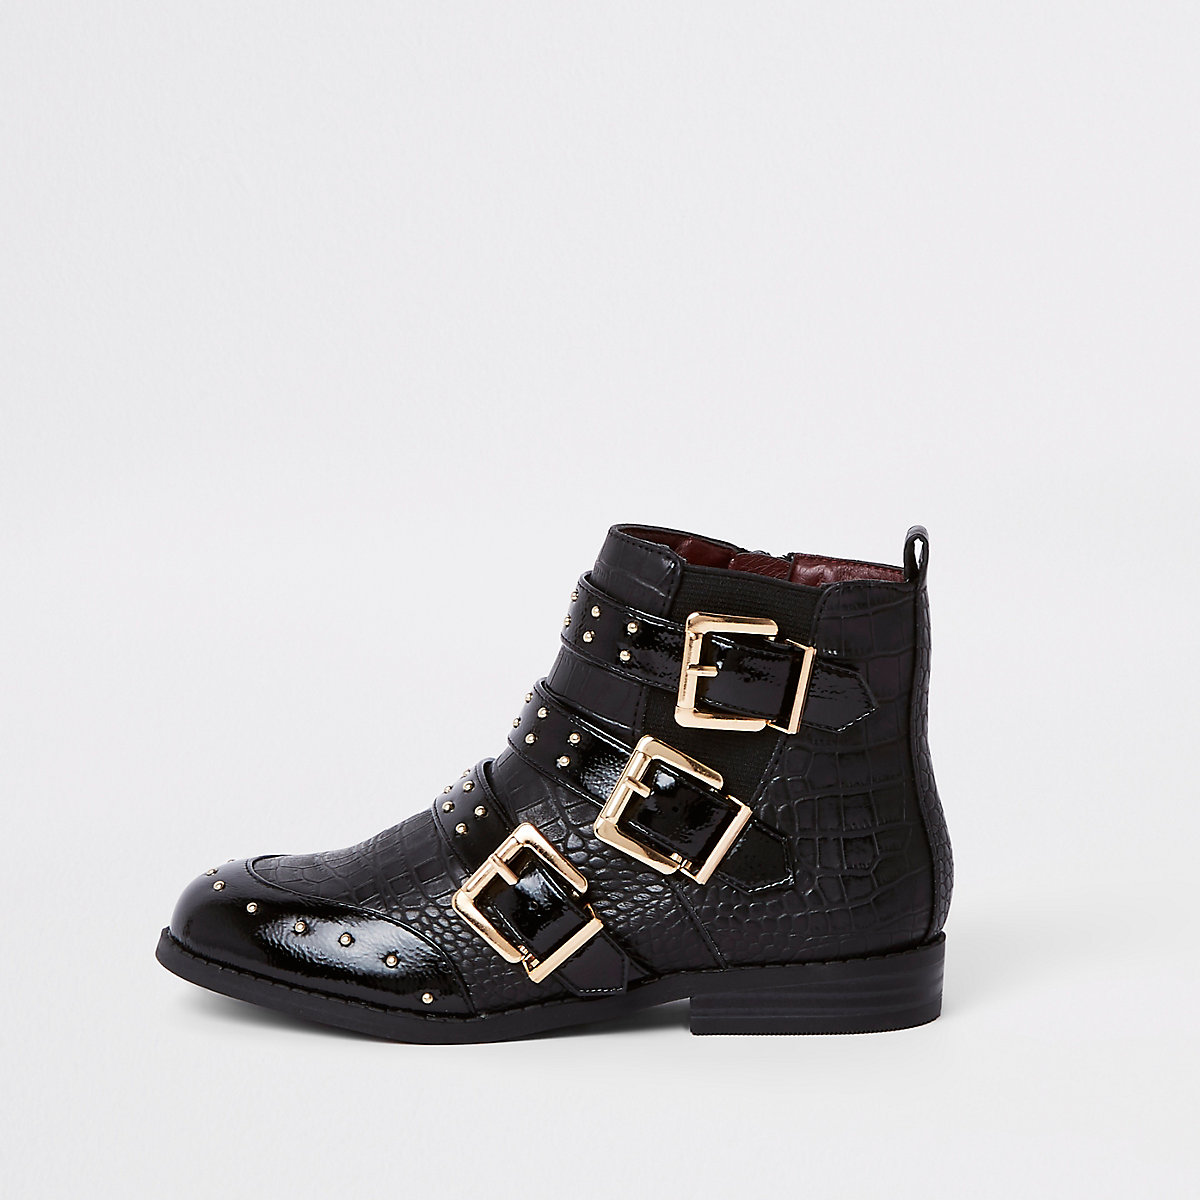 Girls black stud buckle ankle boots